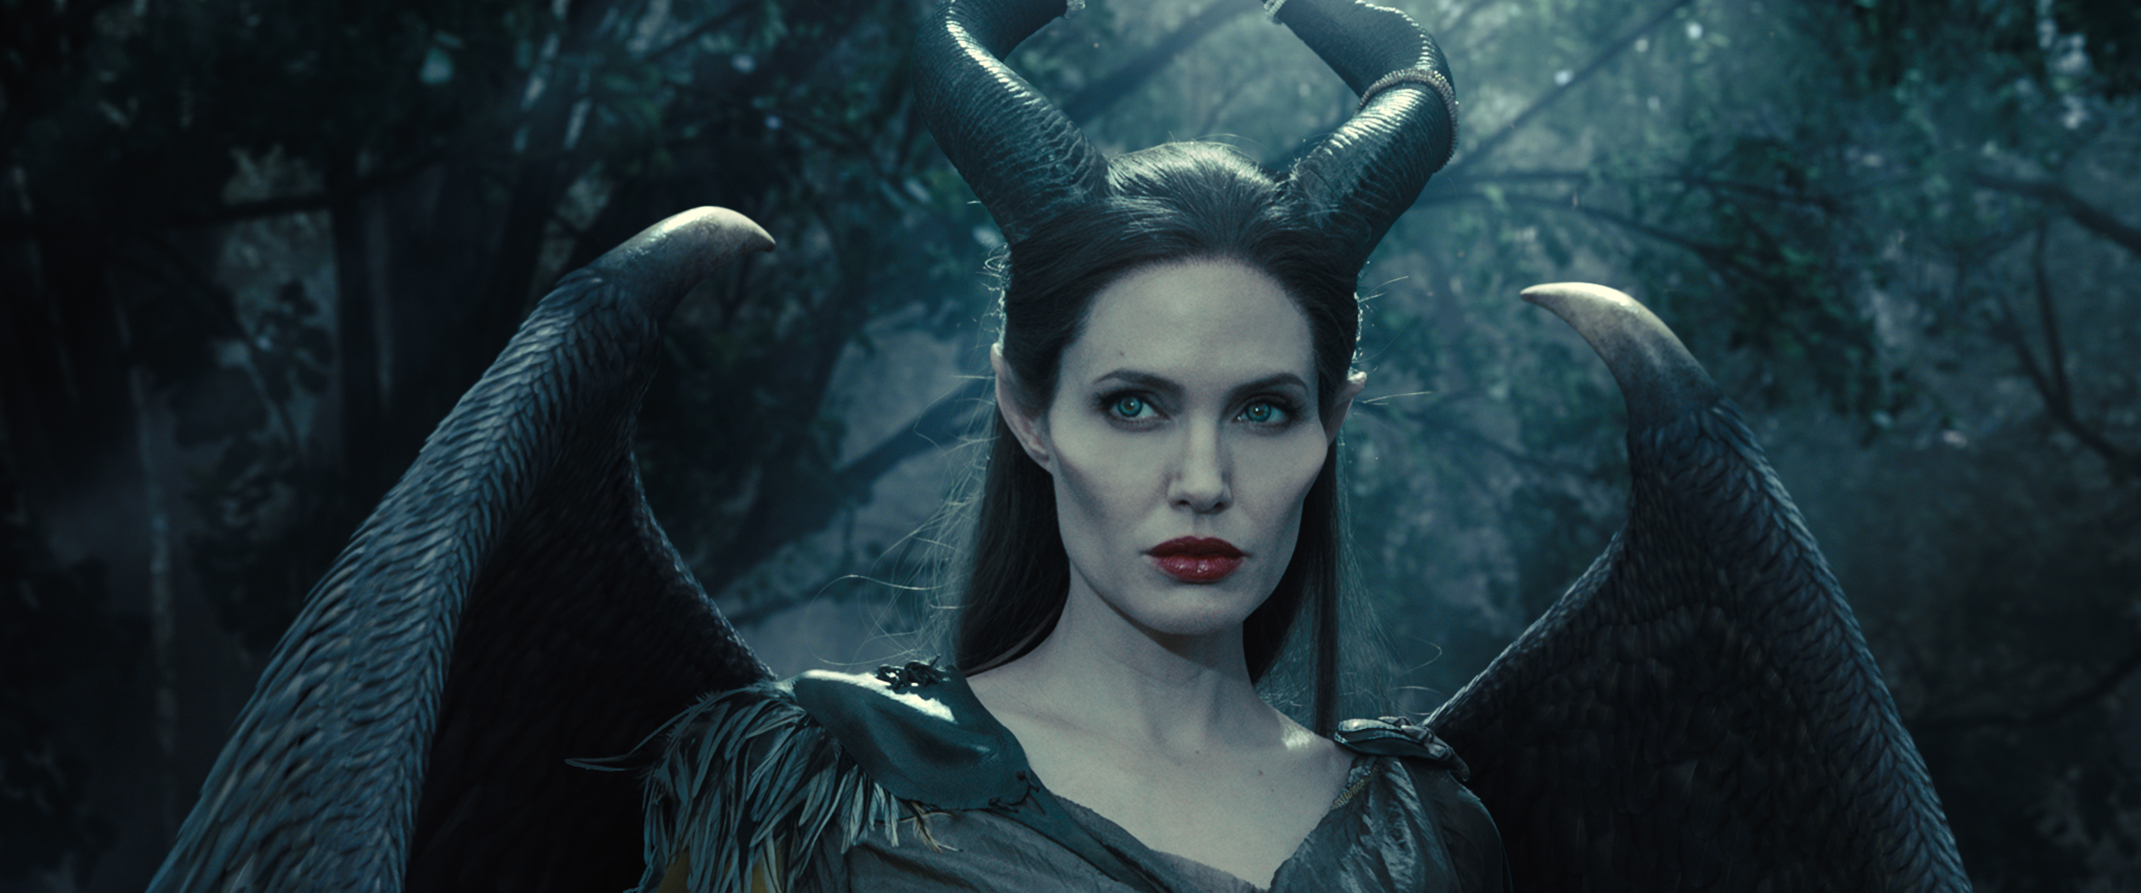 Maleficent 2 Filming Begins Cast And Synopsis Revealed